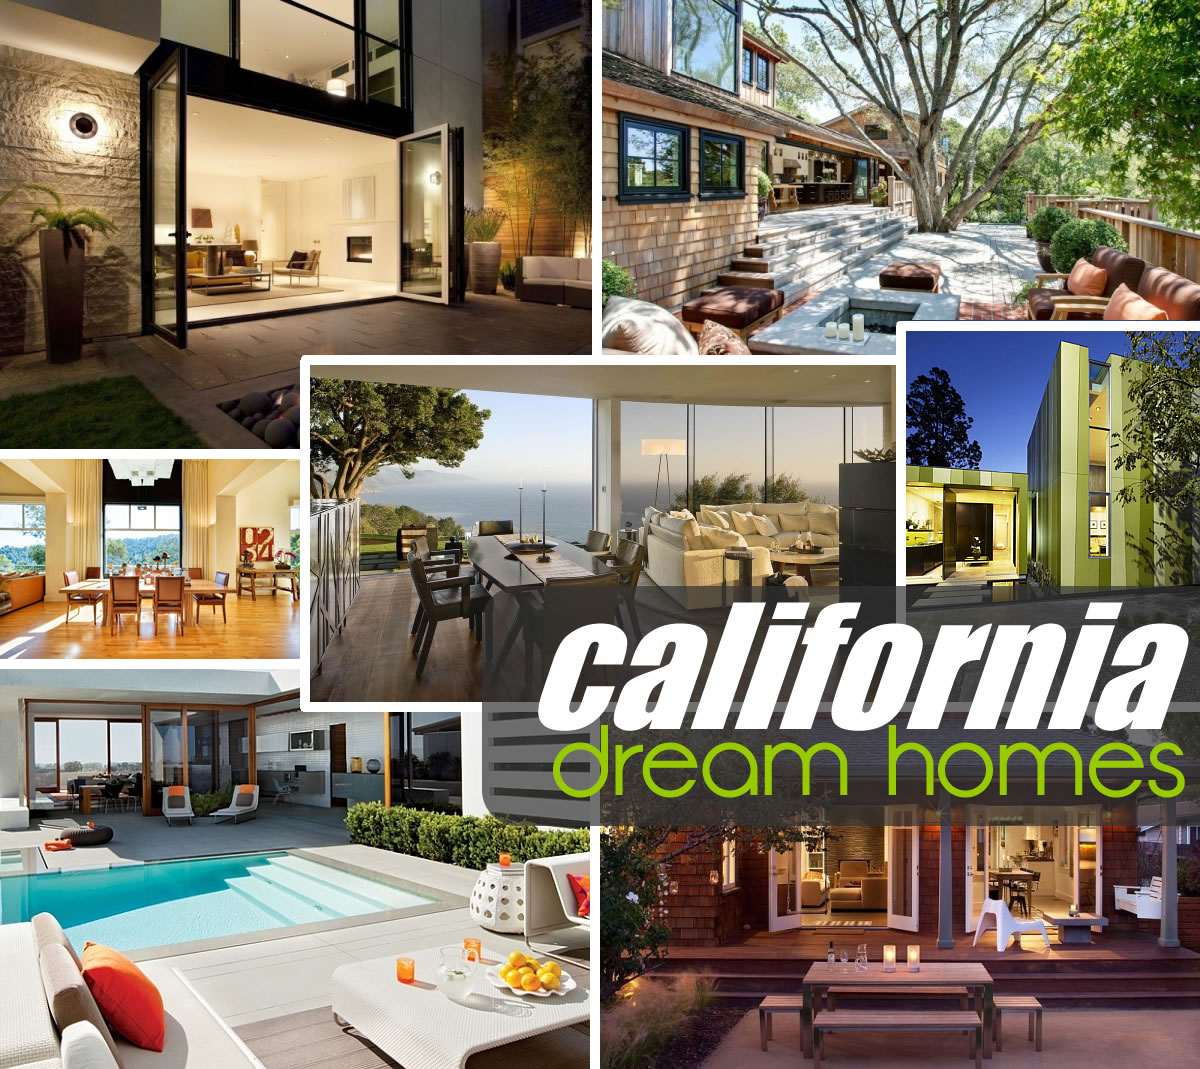 california dream homes: sheer beauty and stunning designs for your